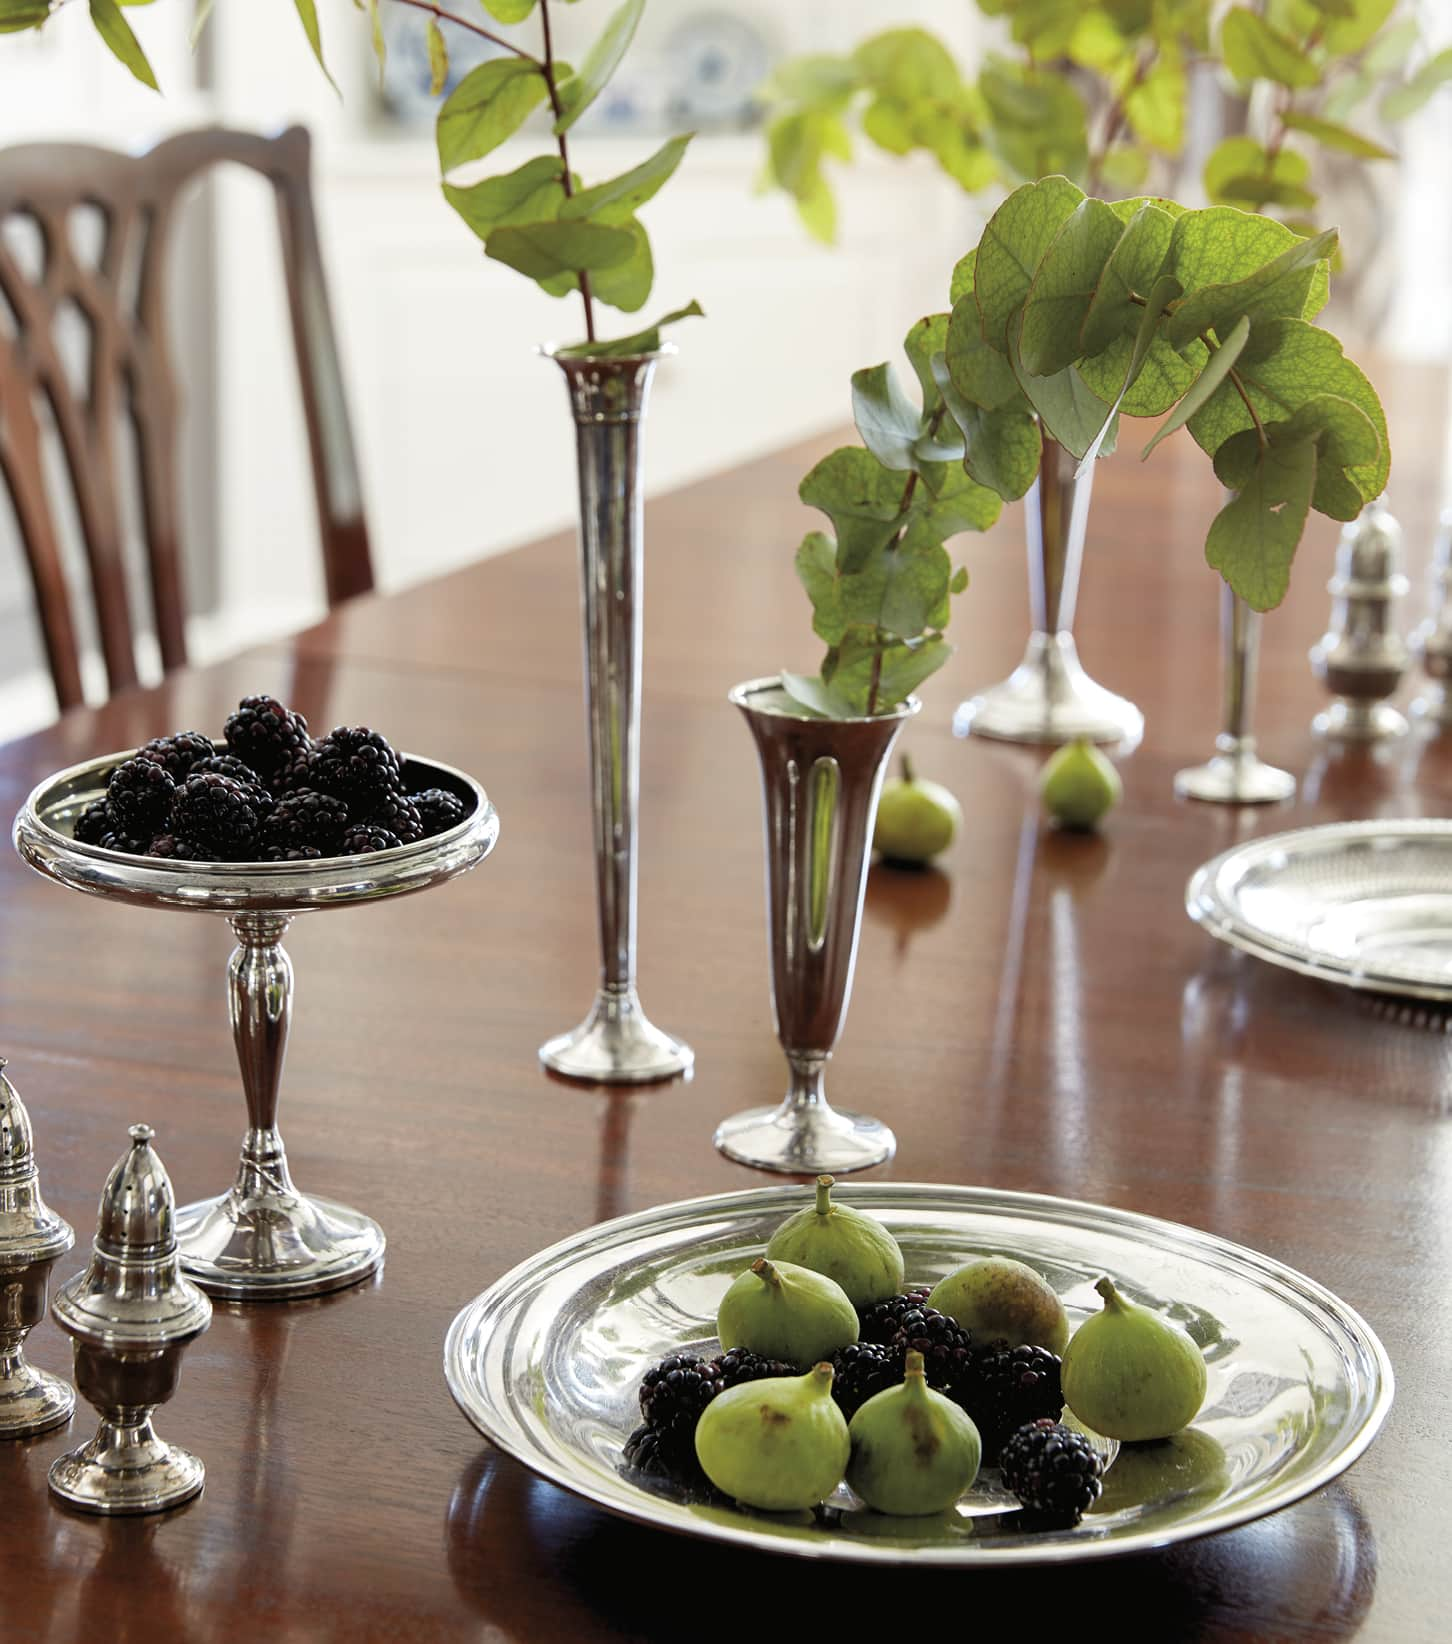 Figs and berries in a silver dish on the dining table